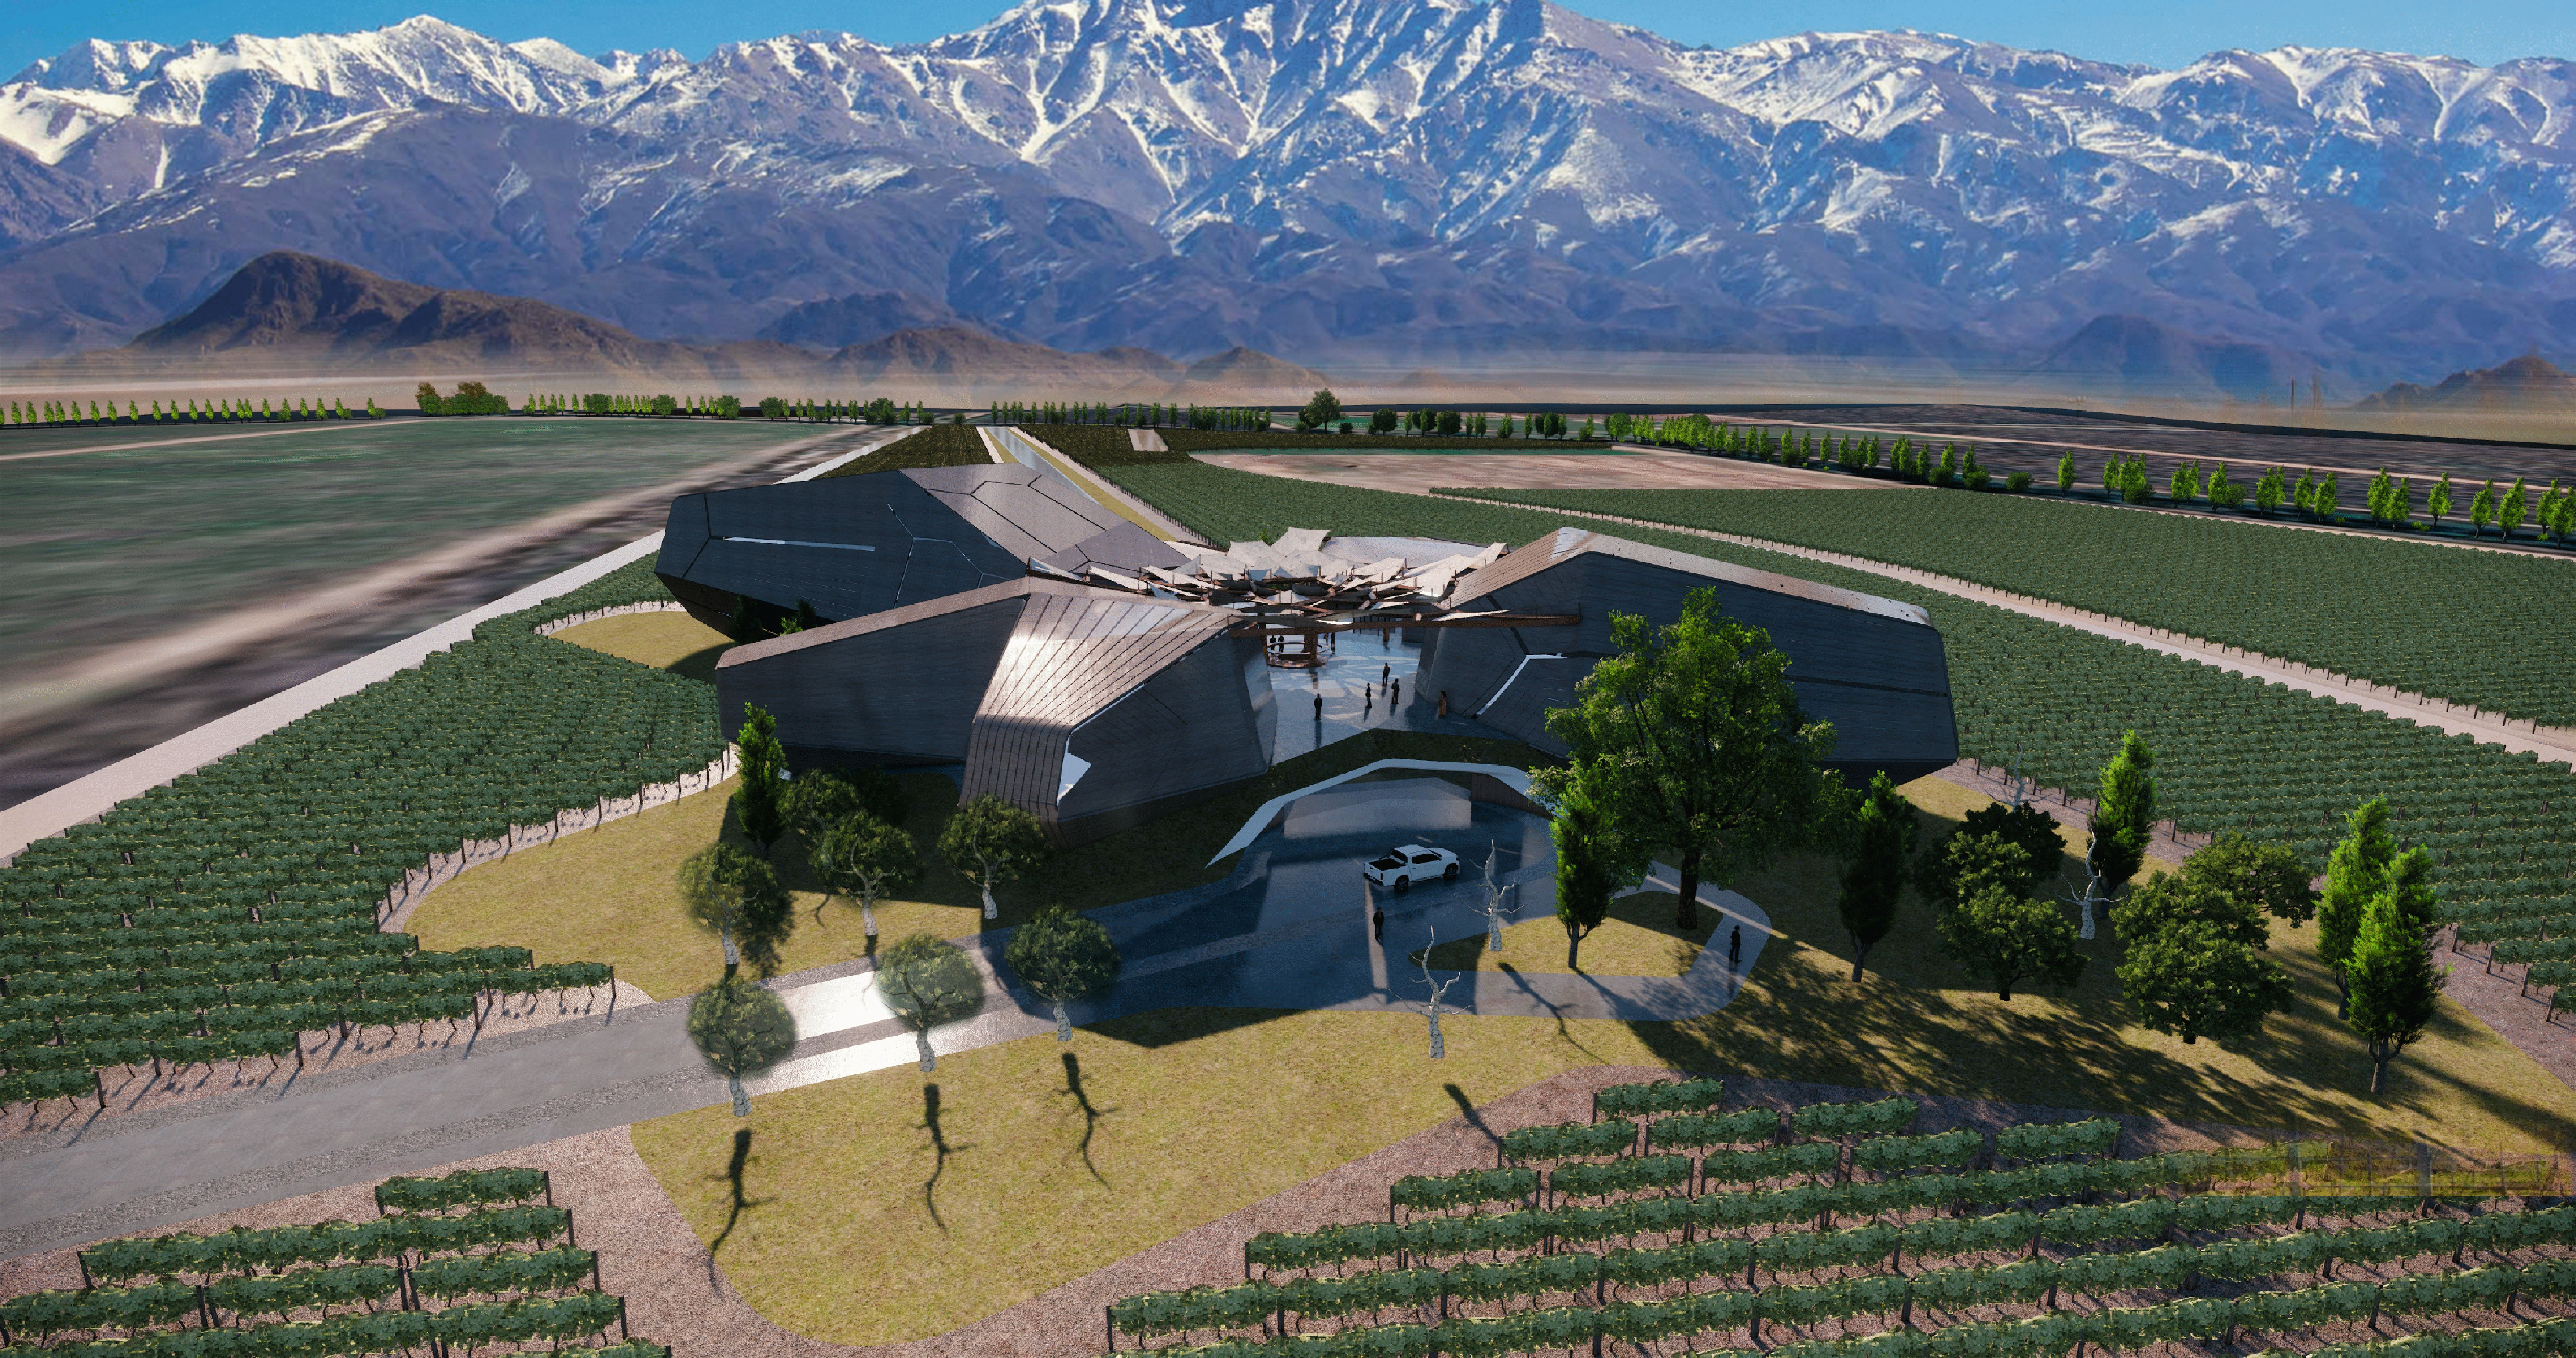 Taking inspiration from nature, the winery is shaped by the local surroundings—the rock formations of the High Andes, the sun's movement through the year and the views of the landscape. Using these features characteristic to Mendoza, GRAFT created four giant stones that embody specific rock geometries found in the high mountains. They are arranged to frame a central plaza, in which the life of the winery is concentrated: arrival and reception, harvest, tasting, wine festivals and celebrations. Shaped by the celestial movement of the sun, the stone volumes act like a calendar by reflecting the cycles of a year—just like a bottle of wine.